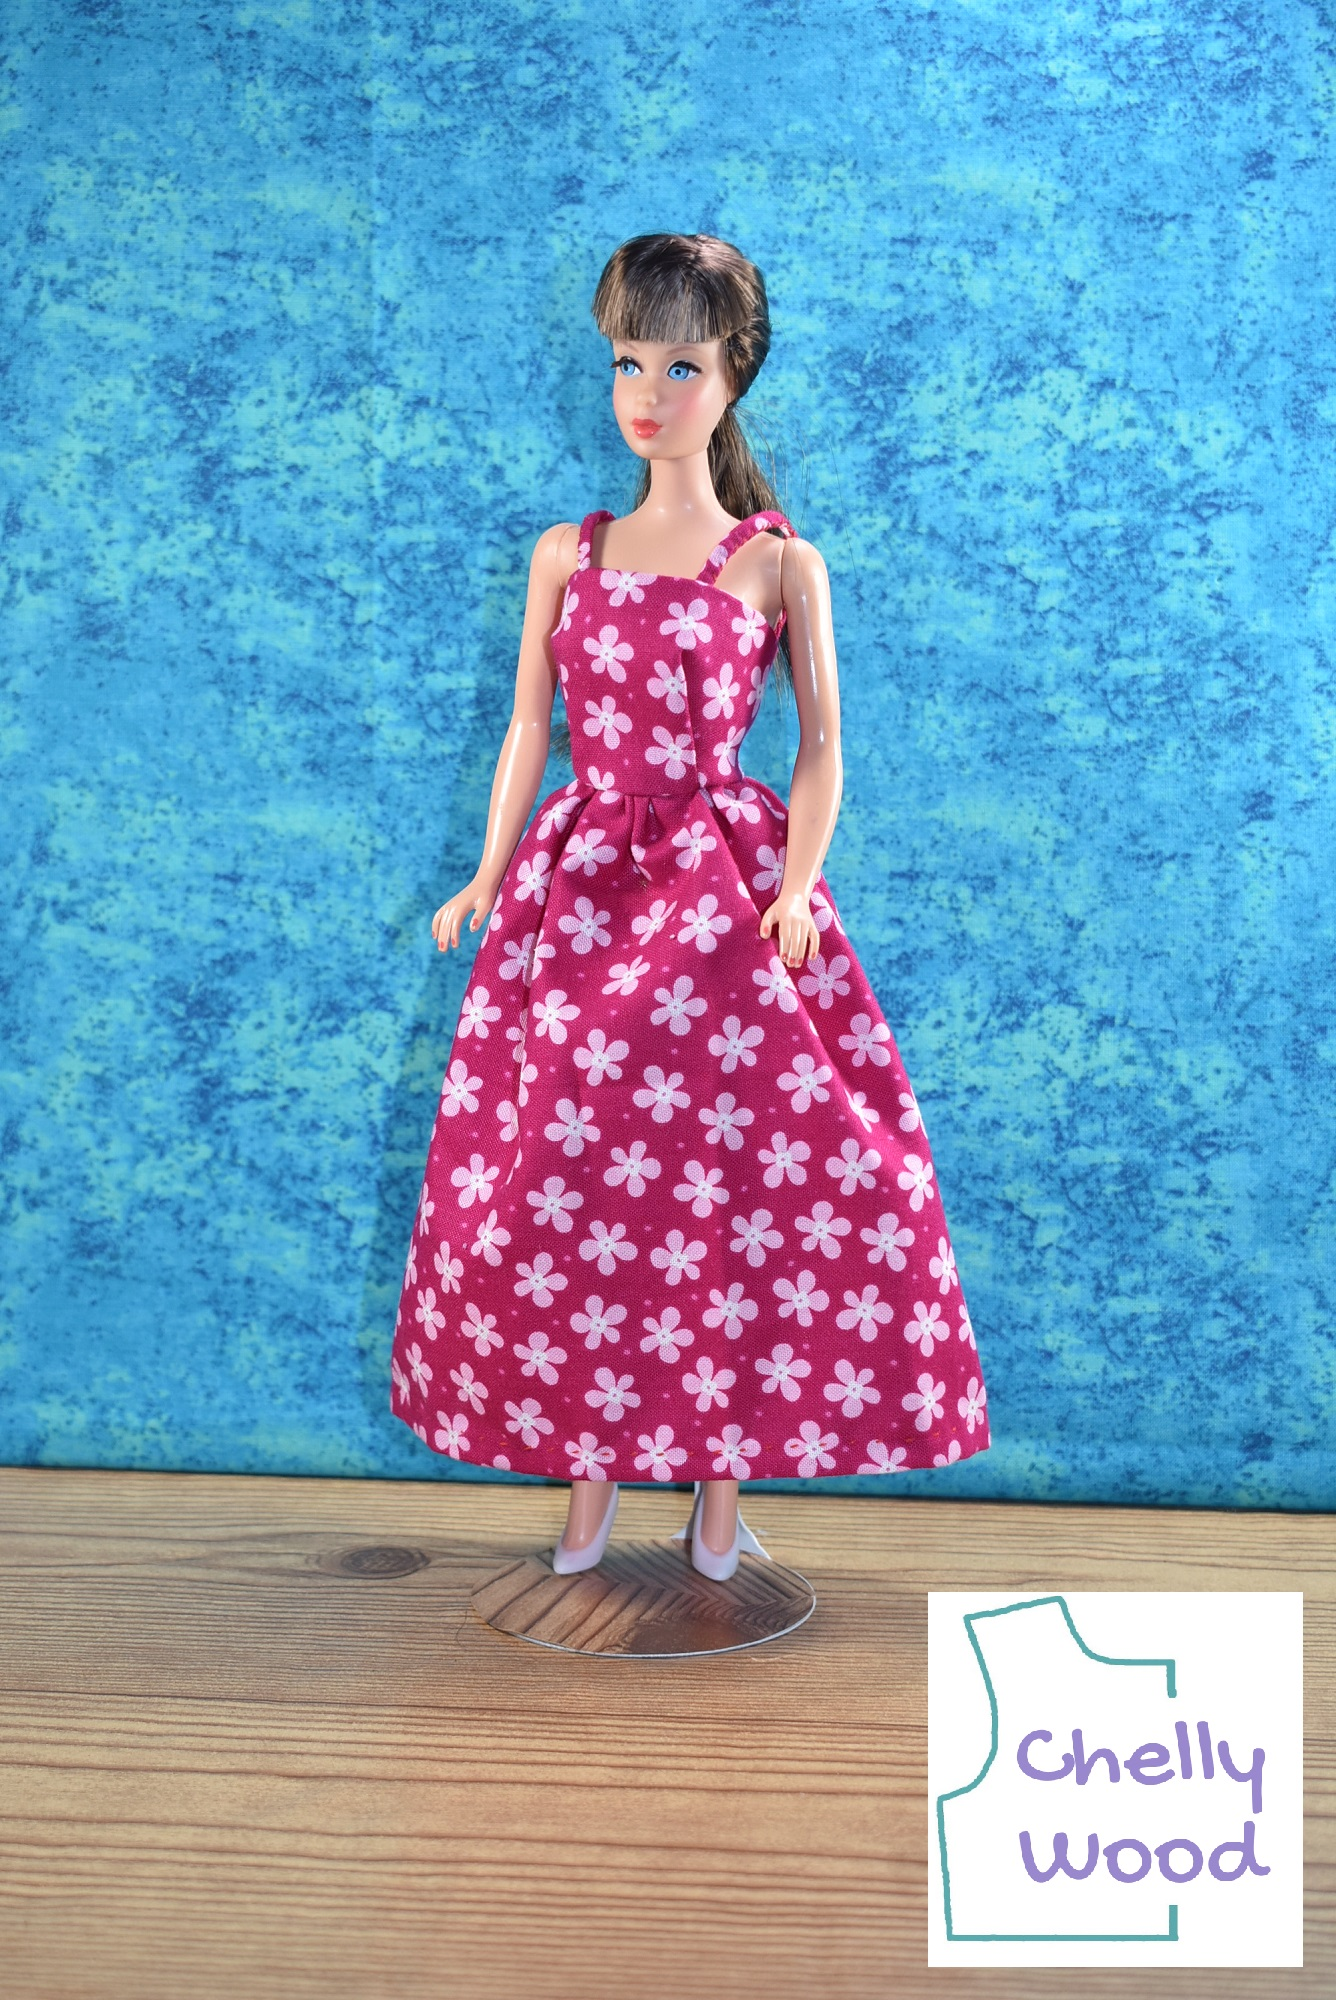 """The image shows a vintage Barbie modeling a hot pink sundress with straps (aka sun dress). The bright pink cotton fabric is dotted with tiny pale pink flowers that have white centers. She wears tiny white plastic high-heel shoes. This is a Mattel vintage Barbie with long dark brown hair and bangs. Her hair is pulled back in a pony tail. There's a watermark on the image, and it's the outline of a bodice pattern with the name """"Chelly Wood"""" inside the shape of the pattern. That's because ChellyWood.com is a website best known for its free printable PDF sewing patterns for making doll clothes to fit dolls of many shapes and all different sizes. If you'd like to make this strappy floral sundress, please click on the link in the caption. Follow the links to the page with the free patterns and tutorial videos."""